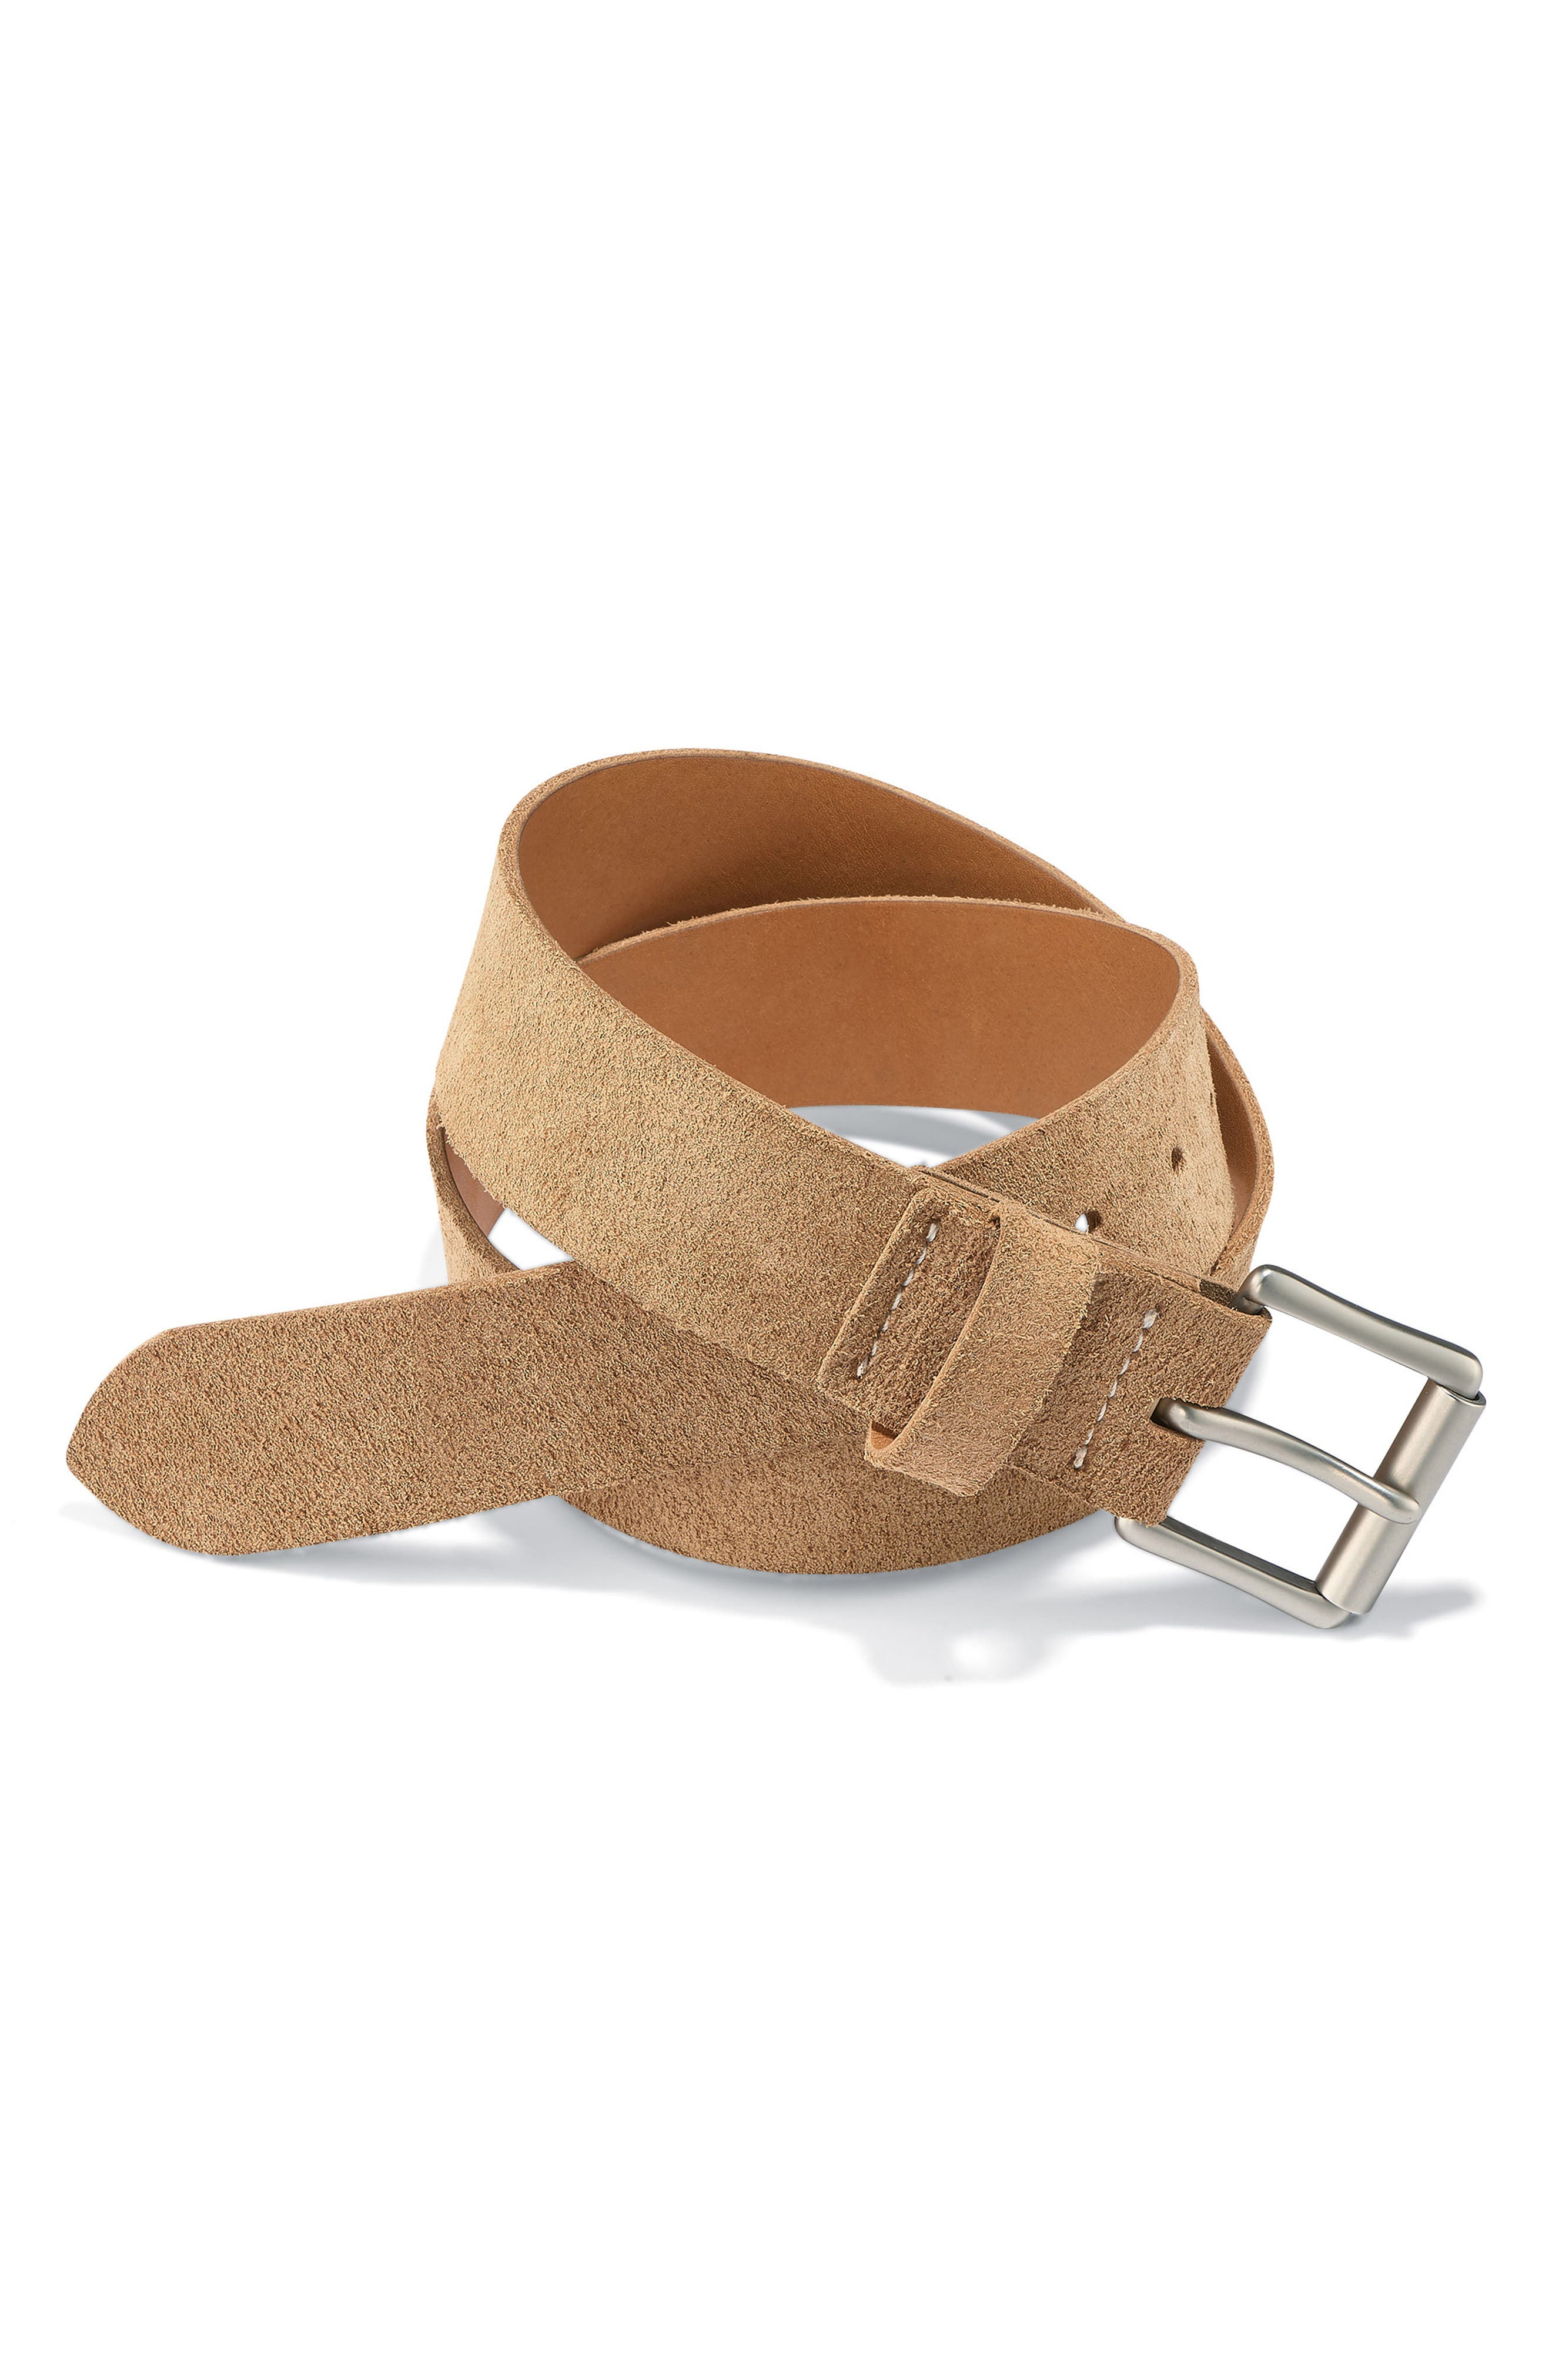 Leather Belt,                             Main thumbnail 1, color,                             HAWTHORNE MULESKINNER